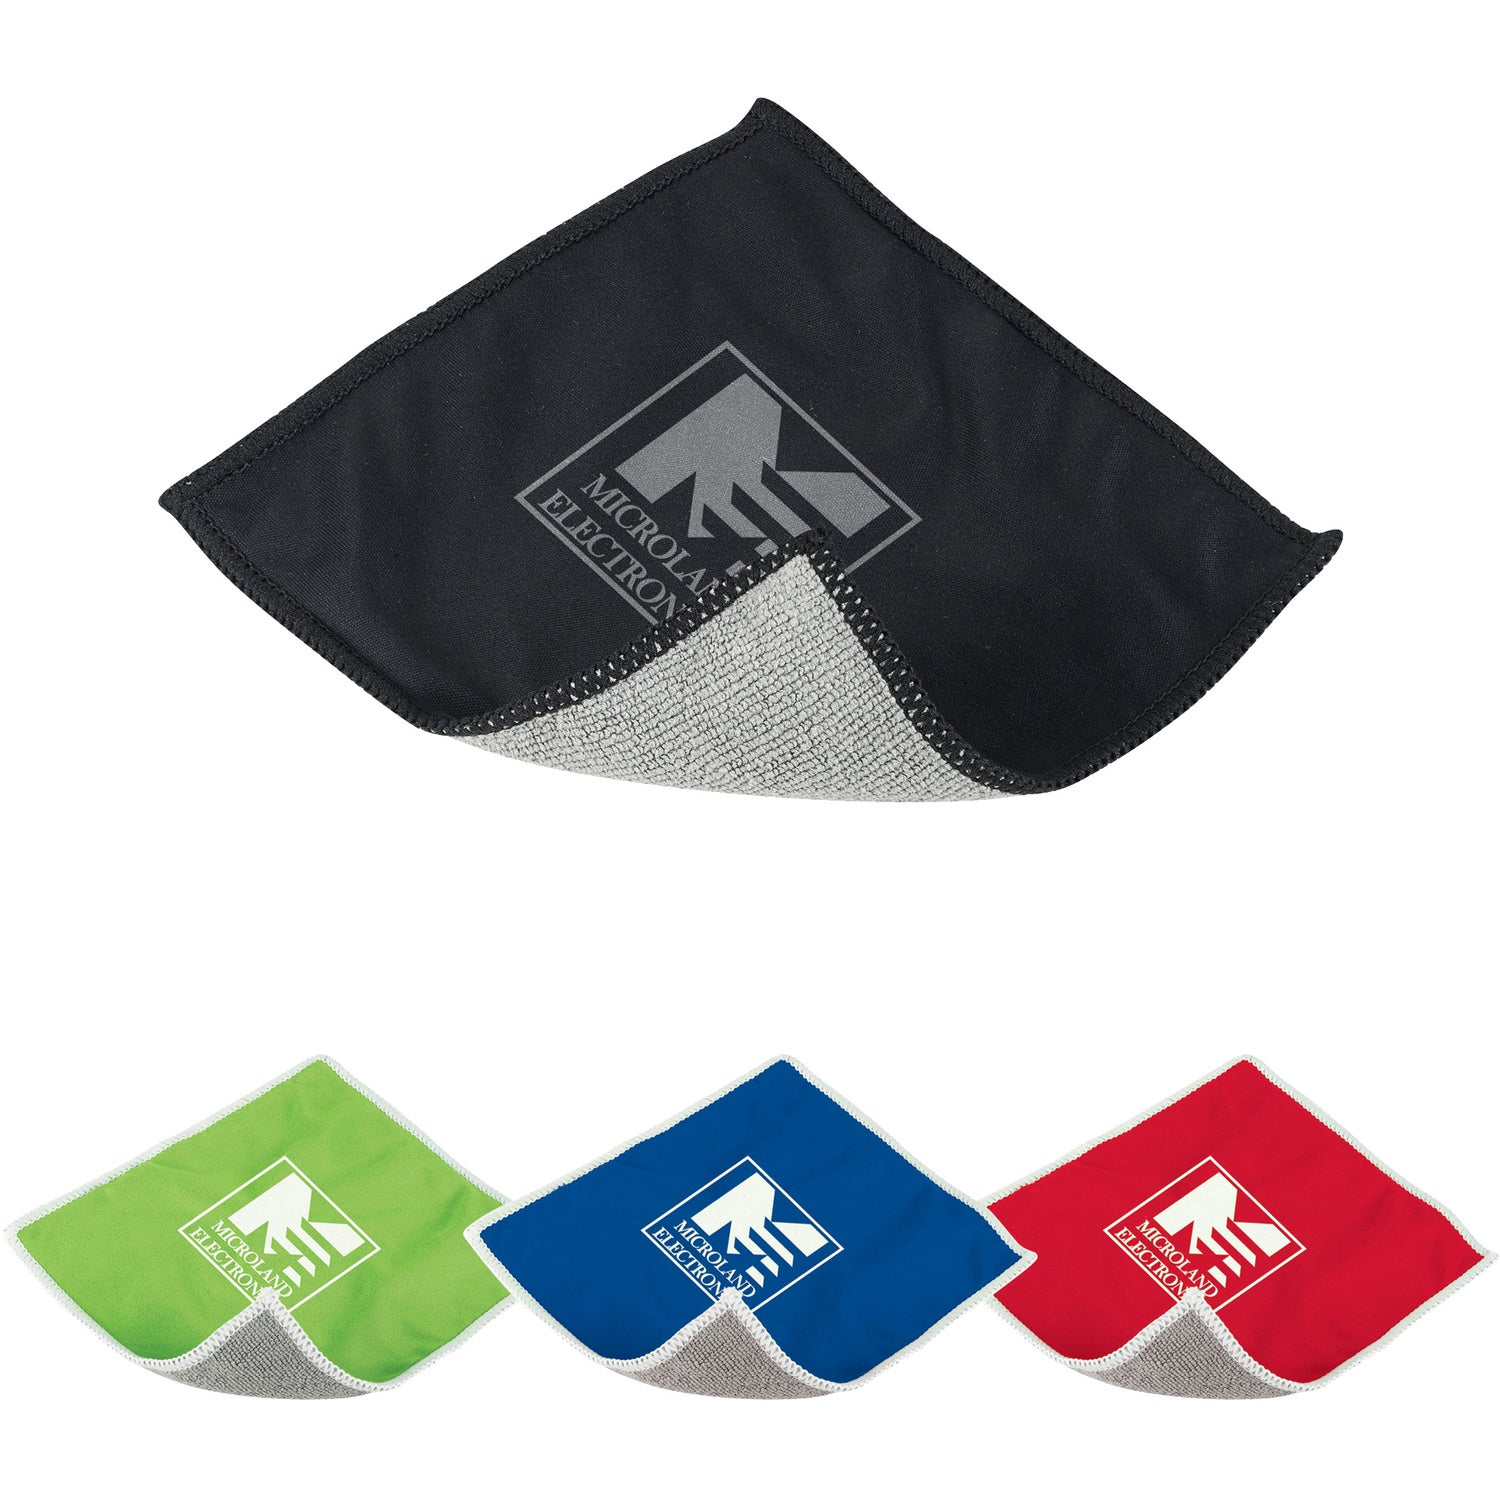 Microfiber Screen Cleaning Cloth Promotional: Promotional Tech Screen Cleaning Cloths With Custom Logo